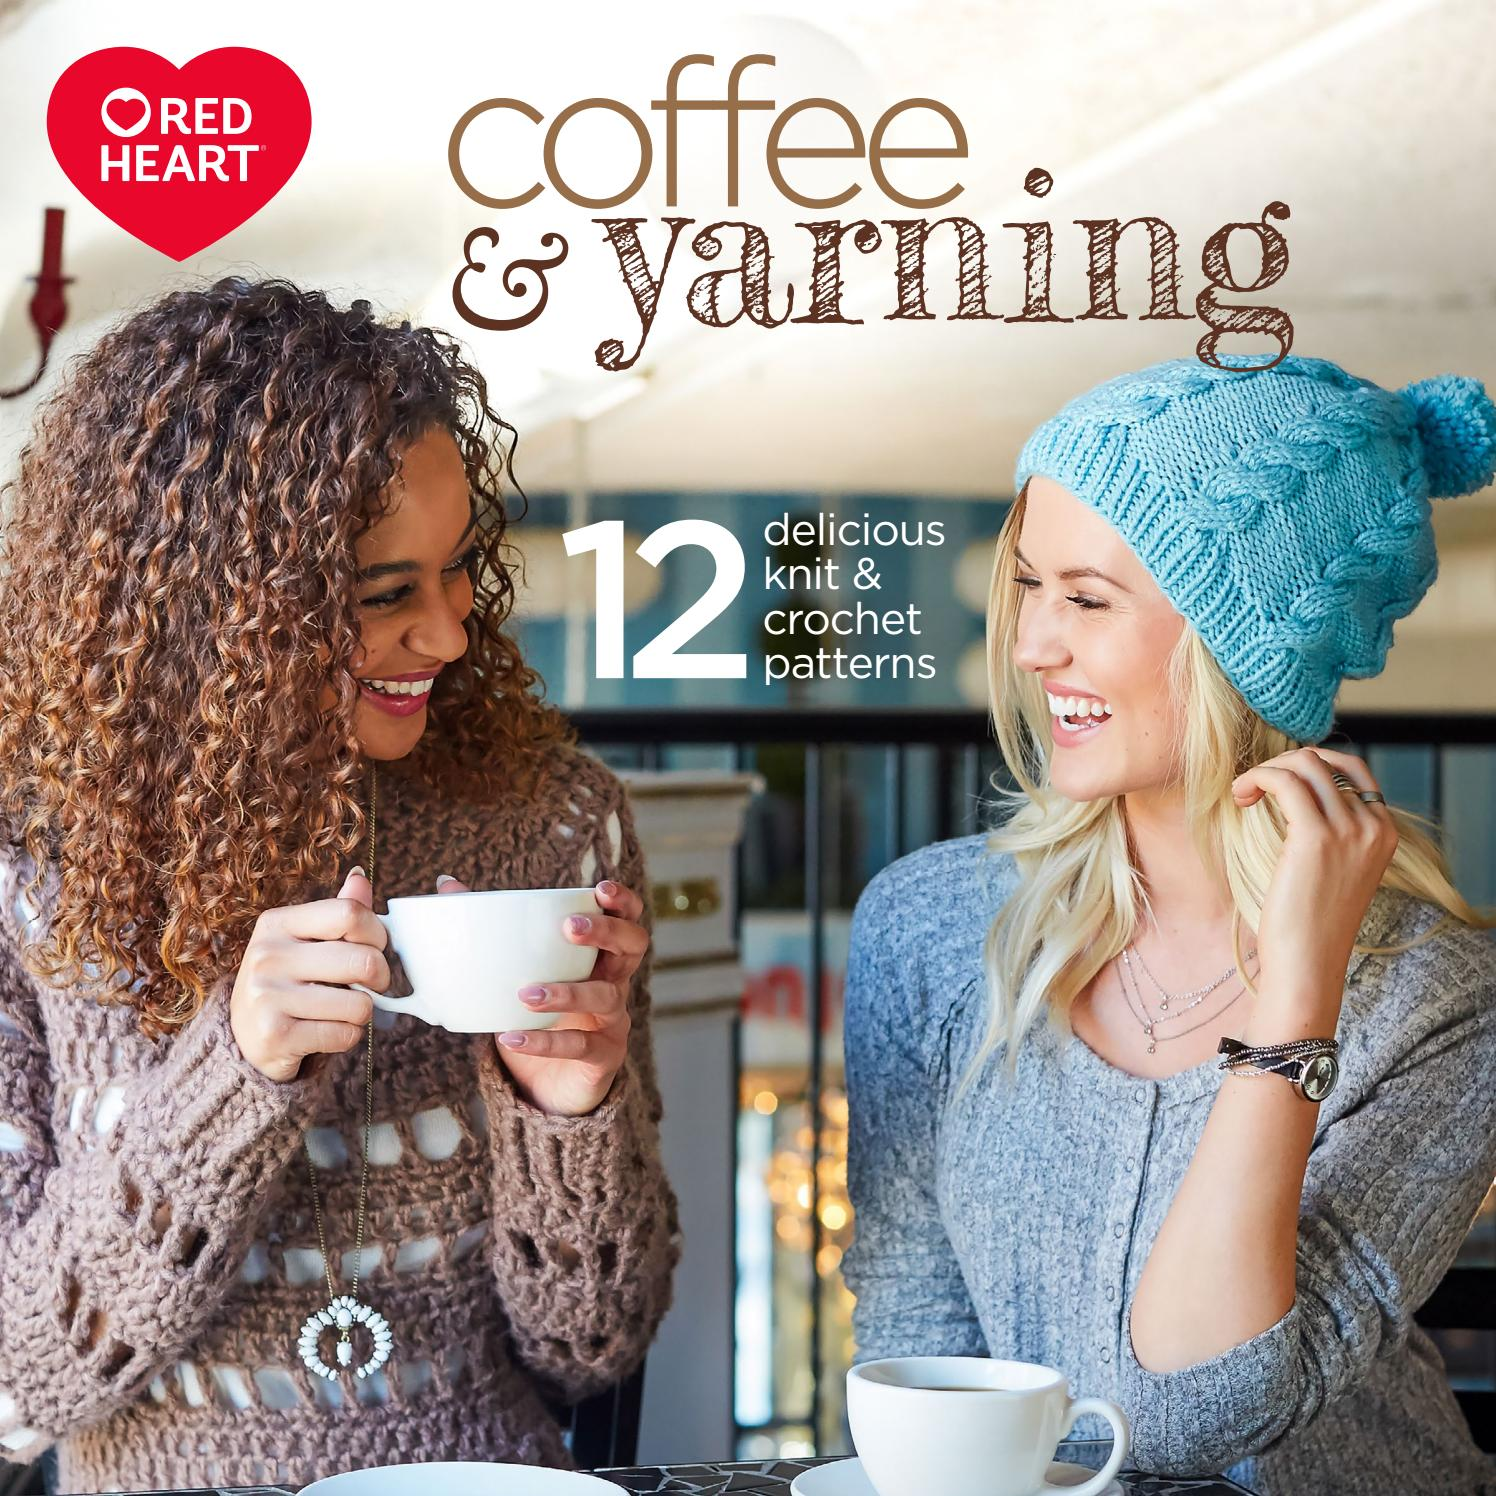 Red Heart Coffee & Yarning Lookbook by Red Heart Yarns - issuu